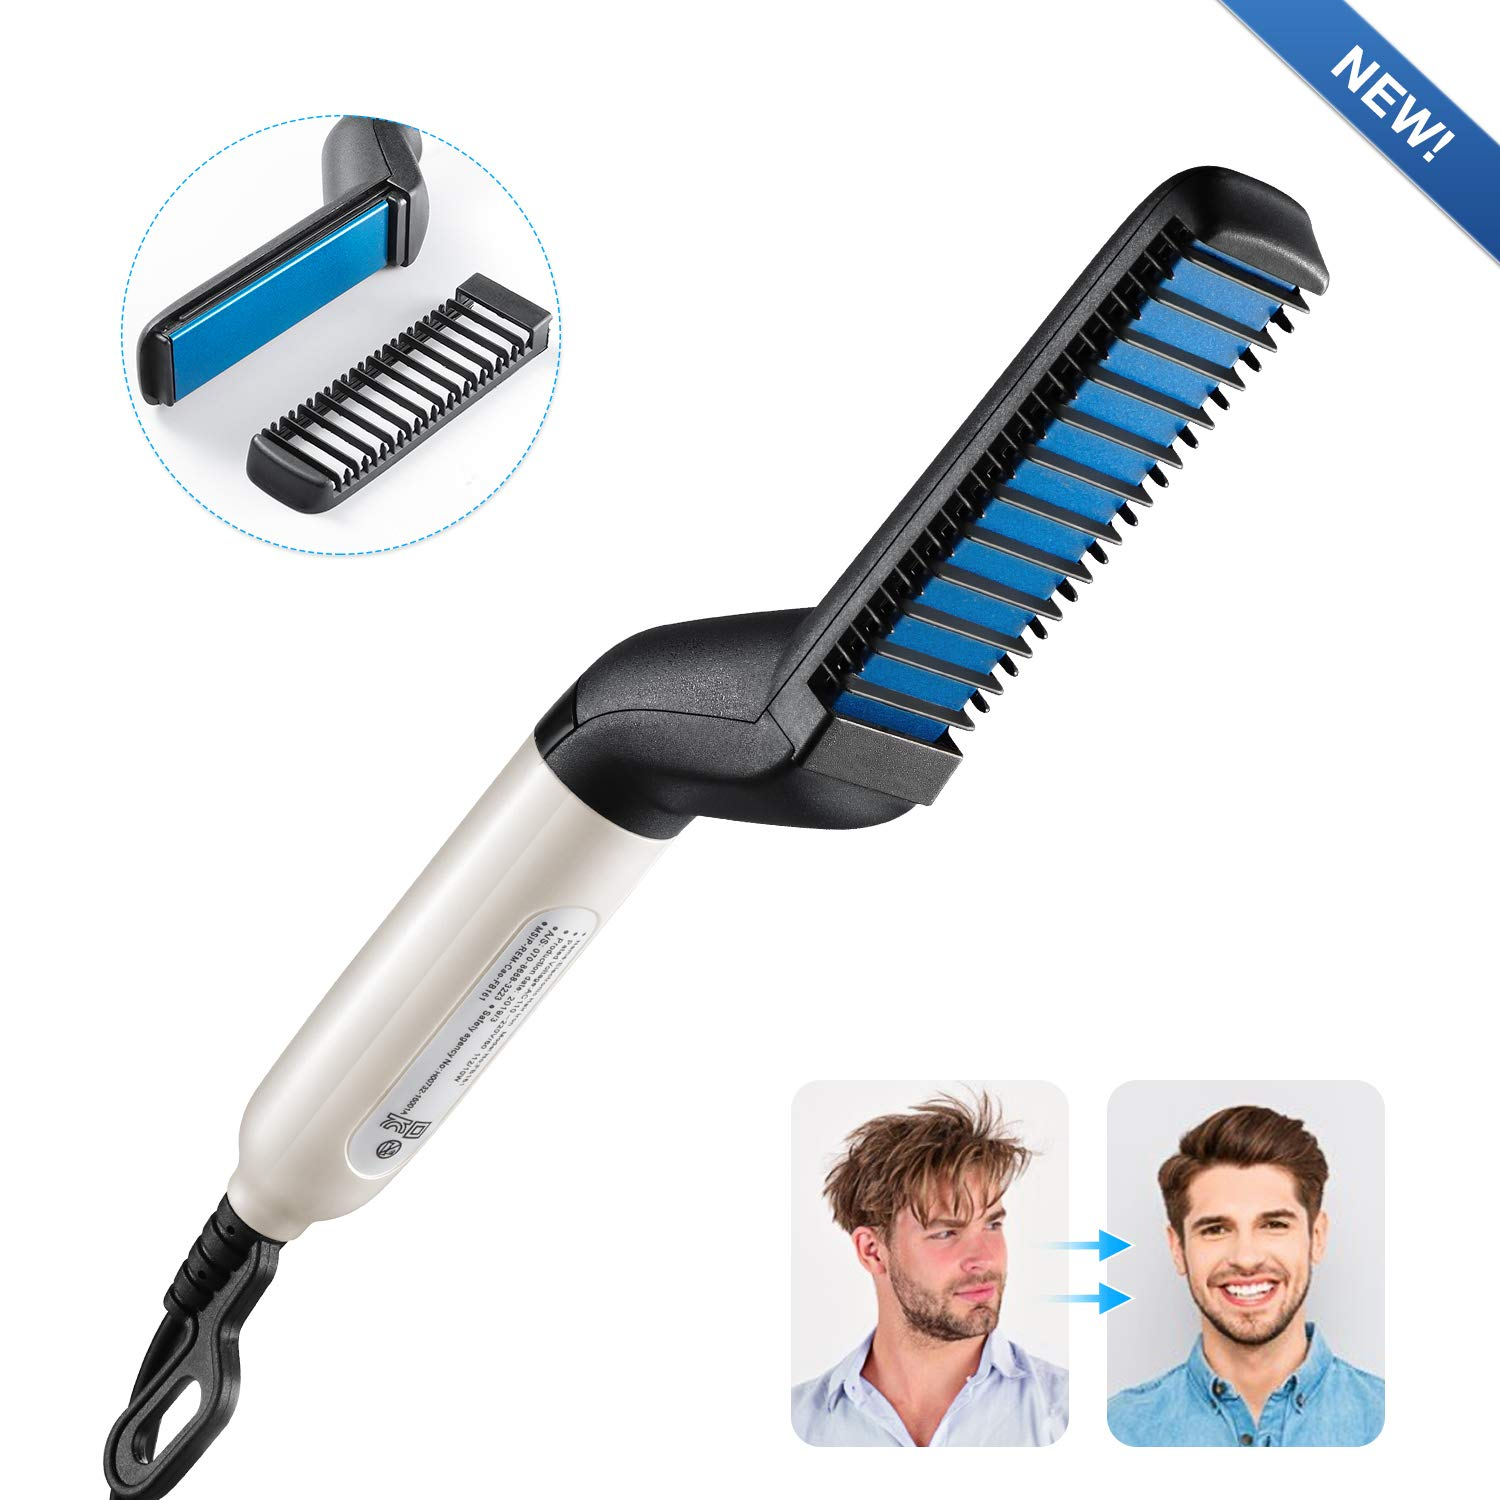 Electric Hair Comb, RIOFLY Quick Beard Hair Styler Comb, Electric Beard Straightener for Men, Multifunctional Hair Comb Curling Iron, Men's Professional Quick Hair Styler